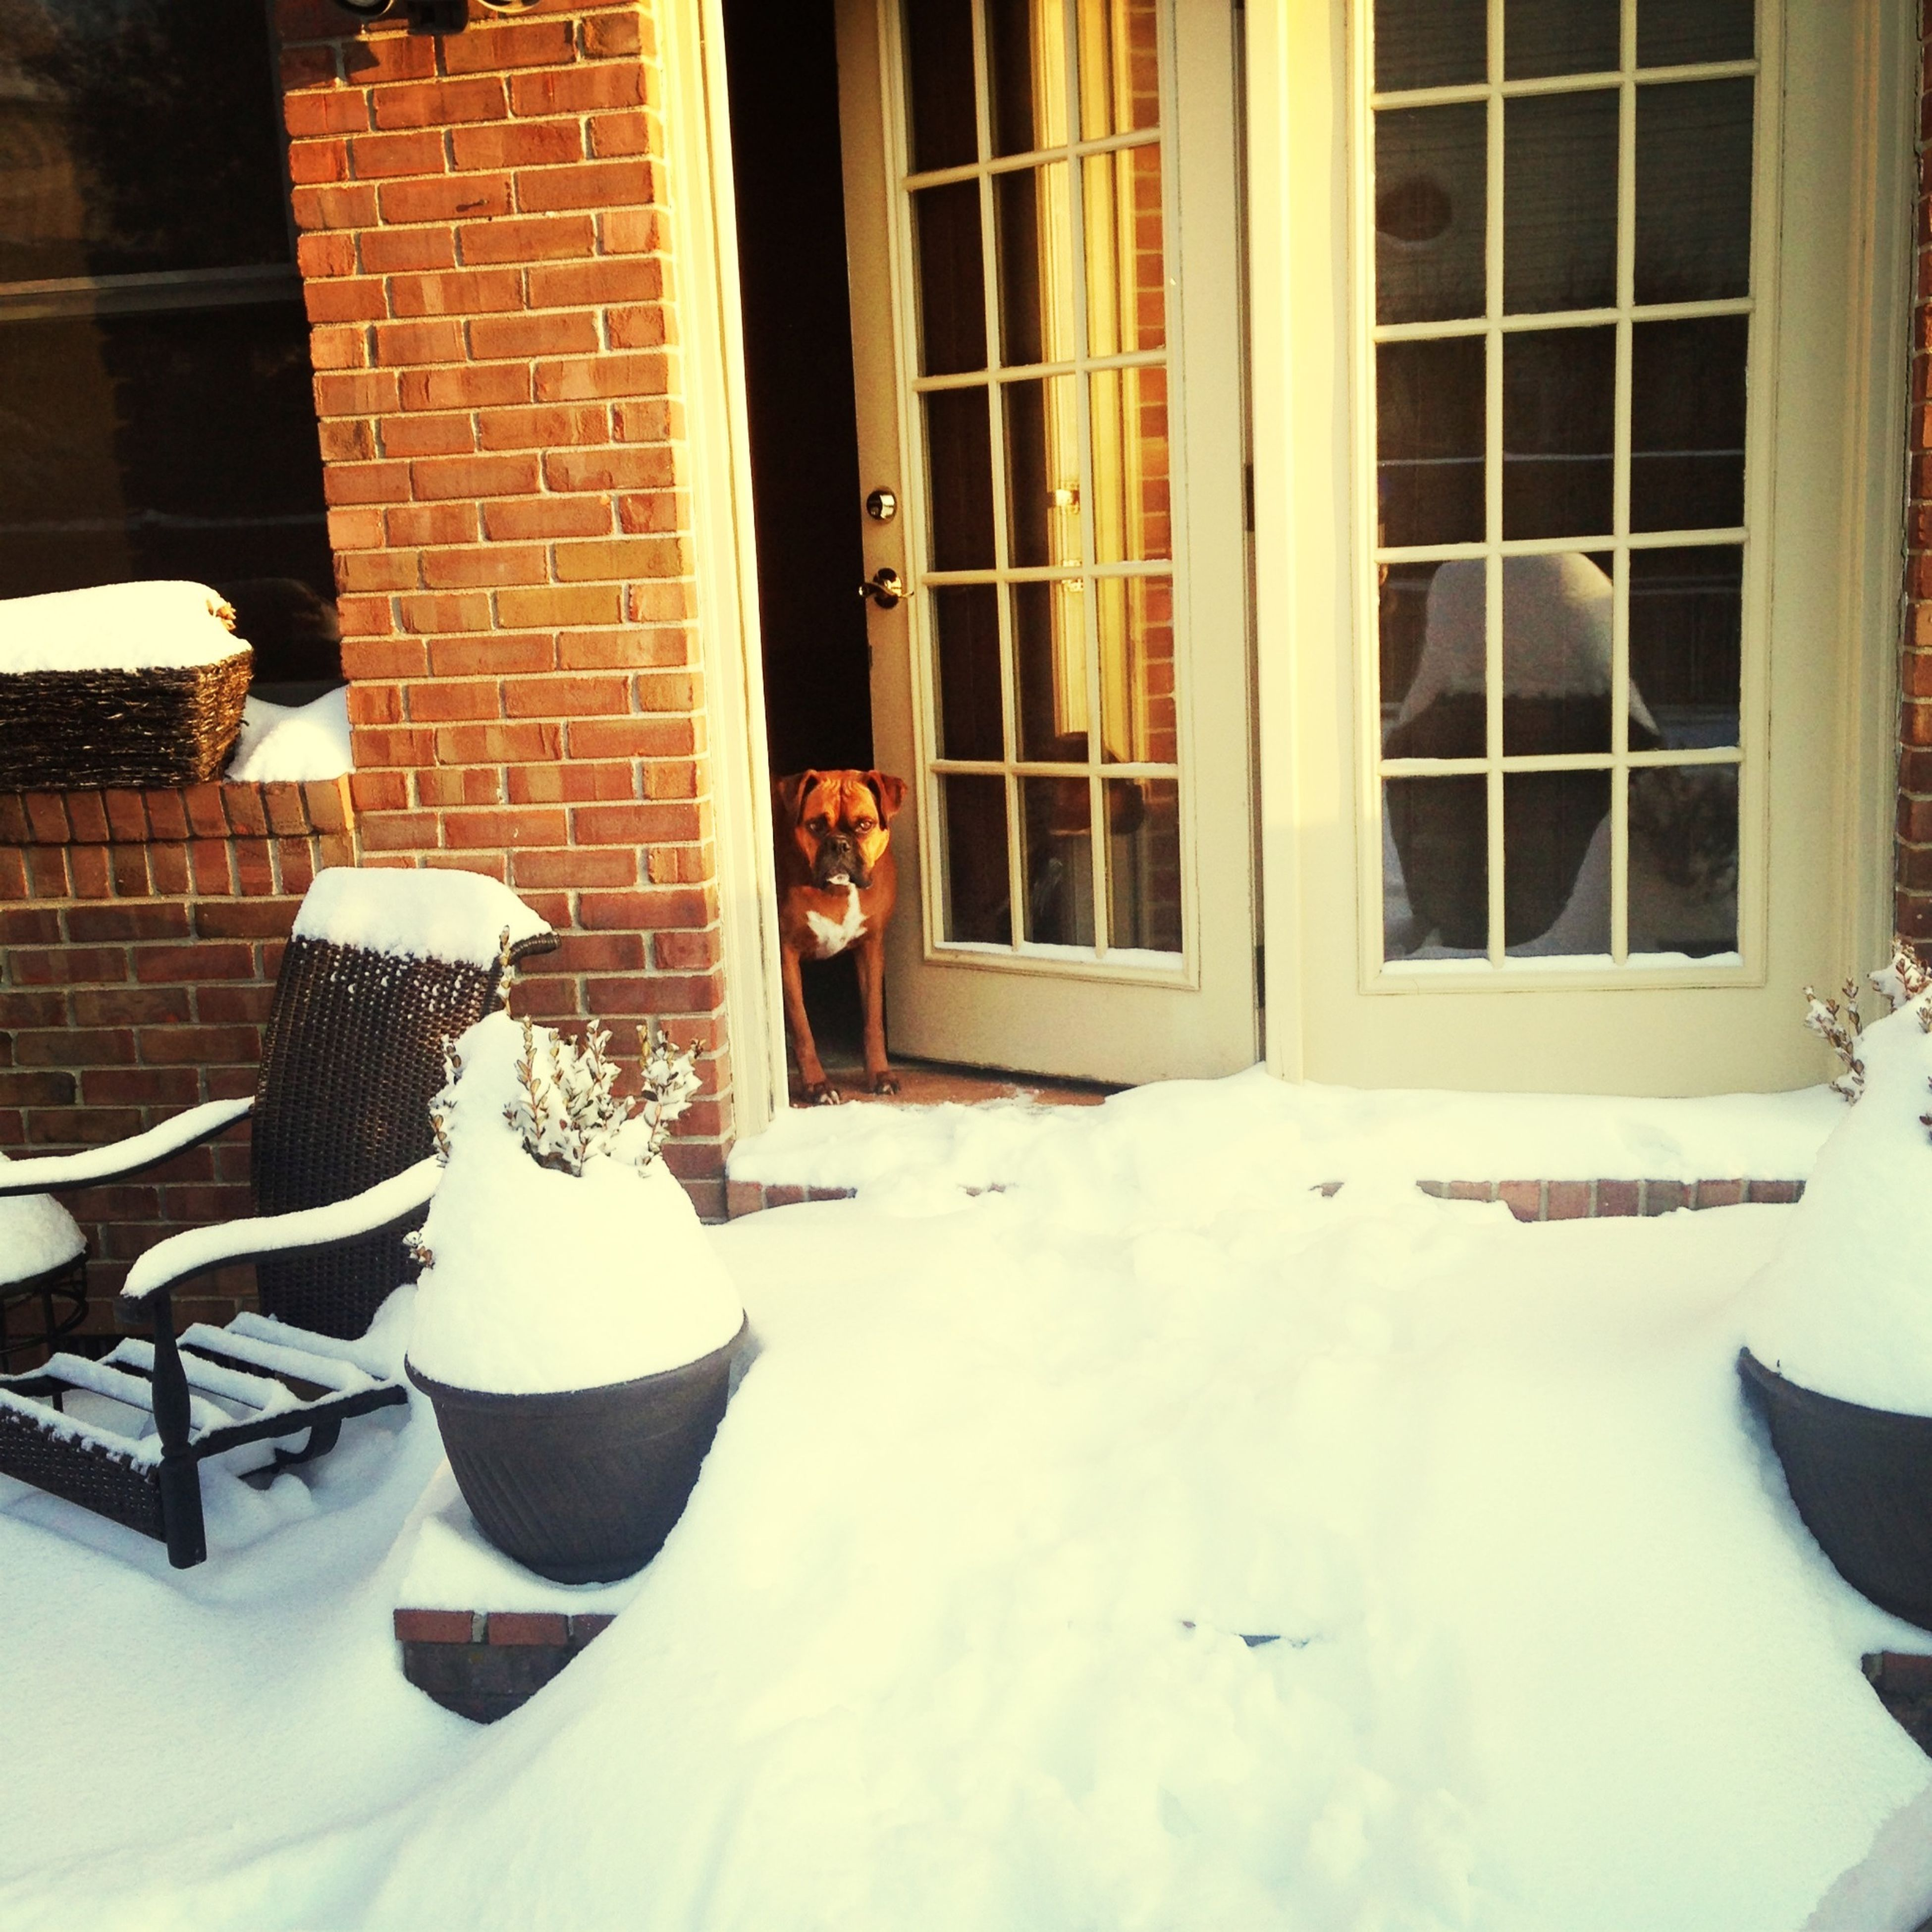 window, architecture, building exterior, built structure, house, chair, potted plant, residential structure, glass - material, day, covering, residential building, brick wall, snow, winter, building, cold temperature, no people, outdoors, sunlight